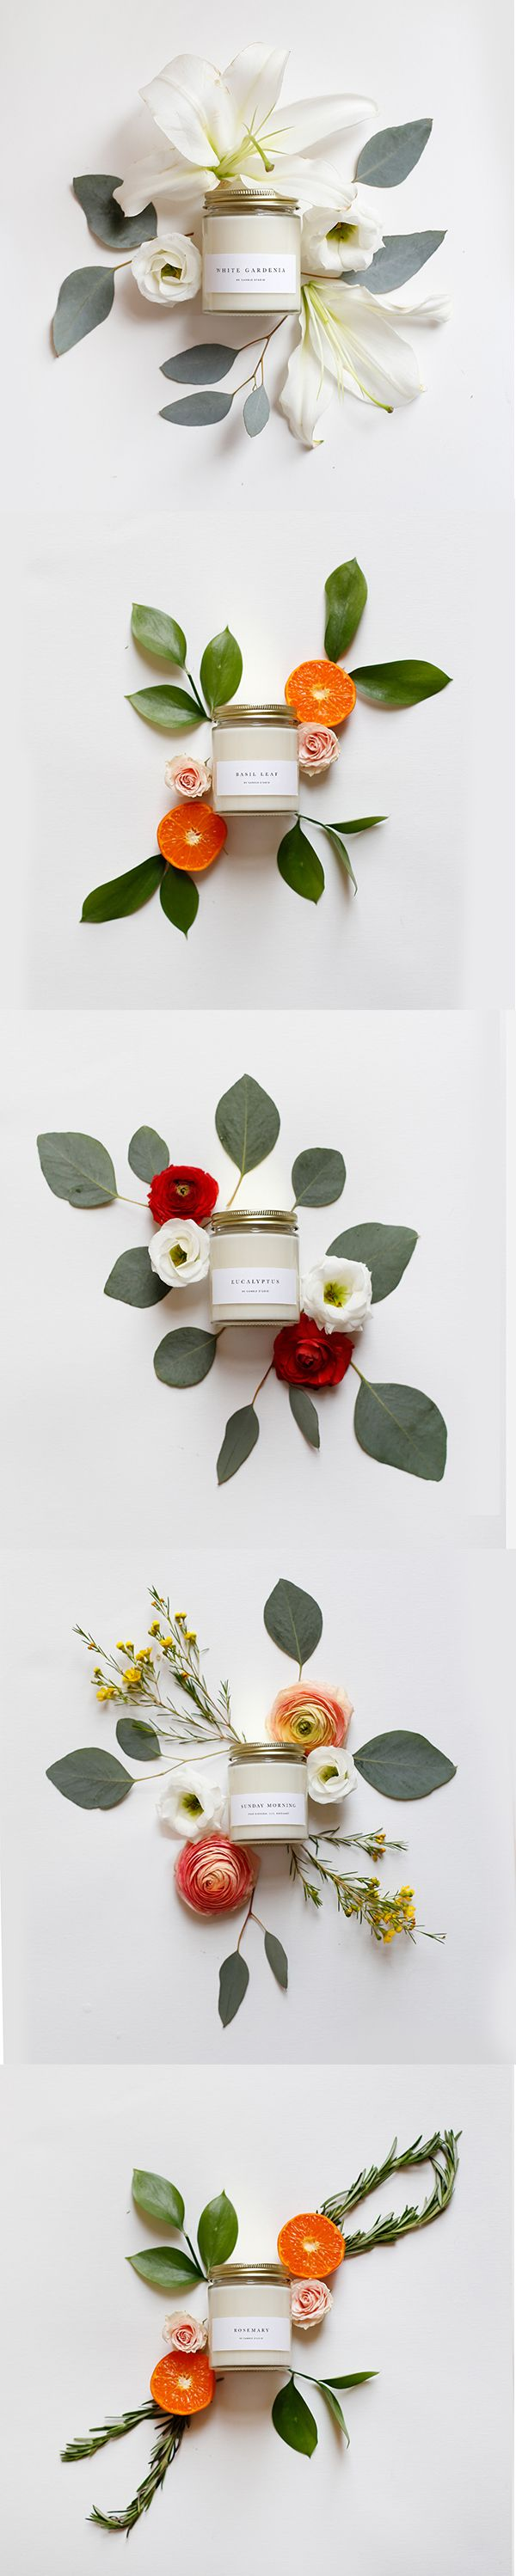 Such a nice idea to present a product differently. Prop Styling - Candles and Flowers // Brooklyn Candle Studio: Photostyling, Styling